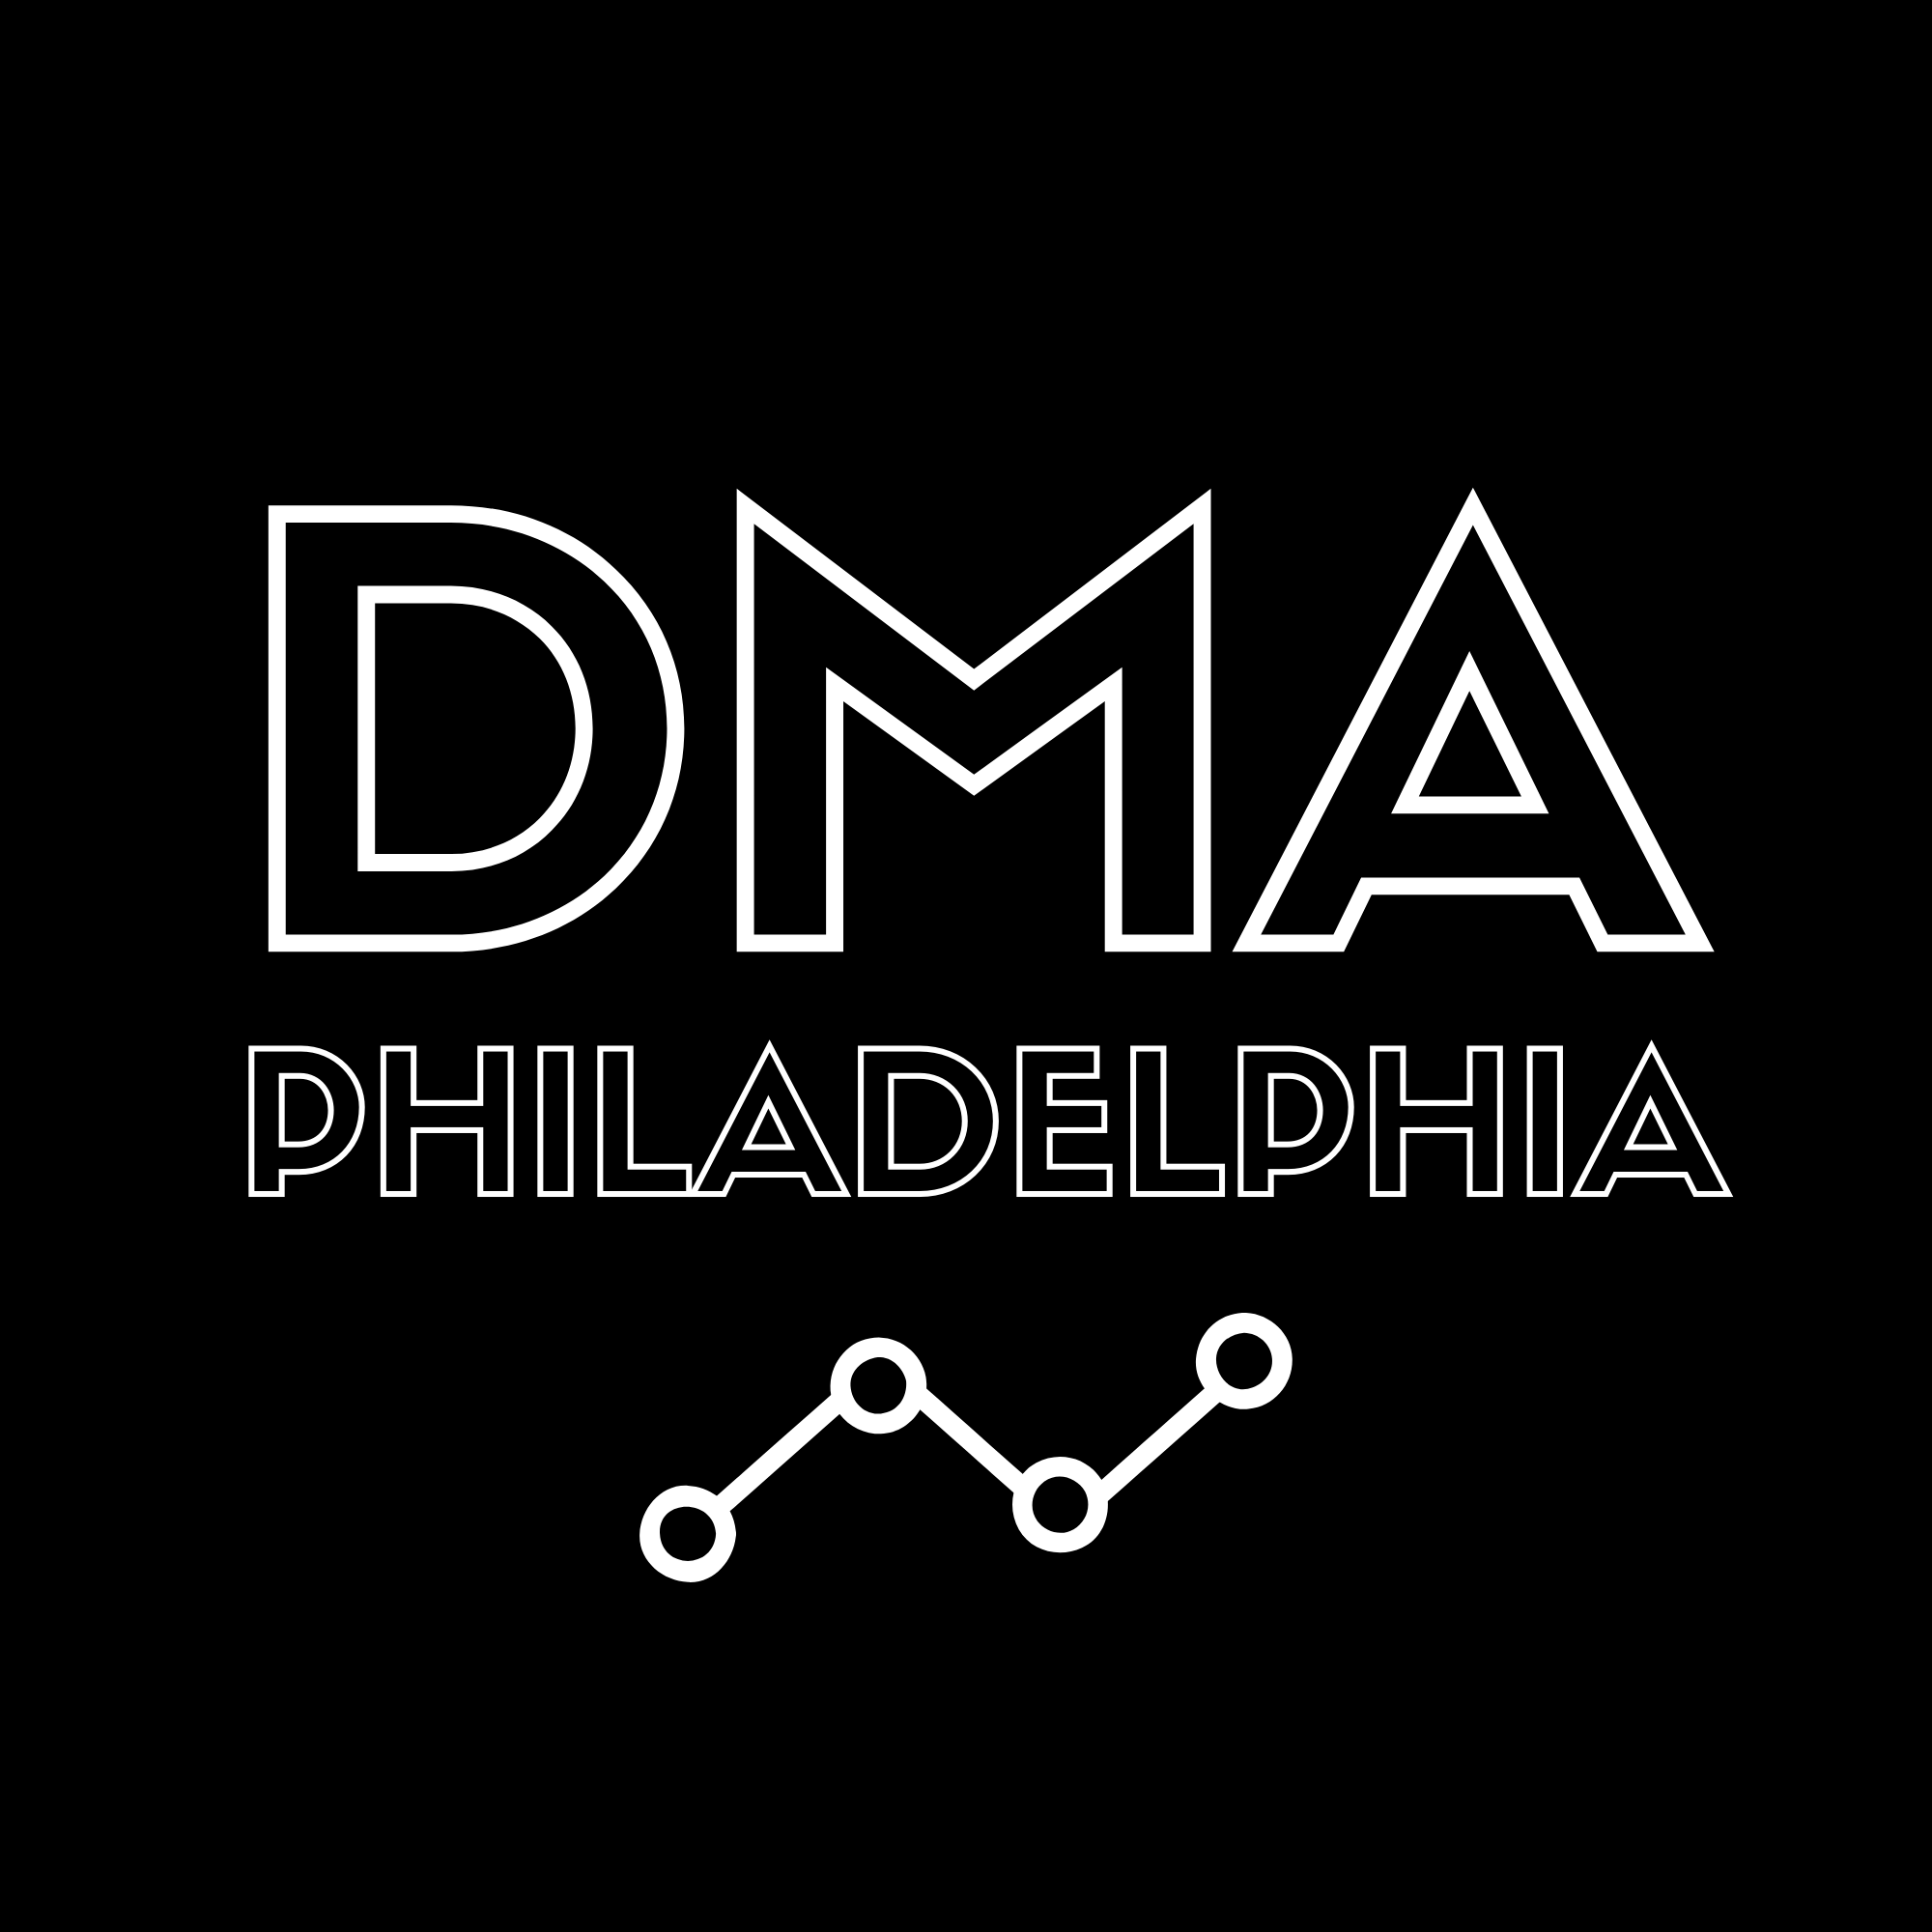 Digital Marketing Agency Philadelphia